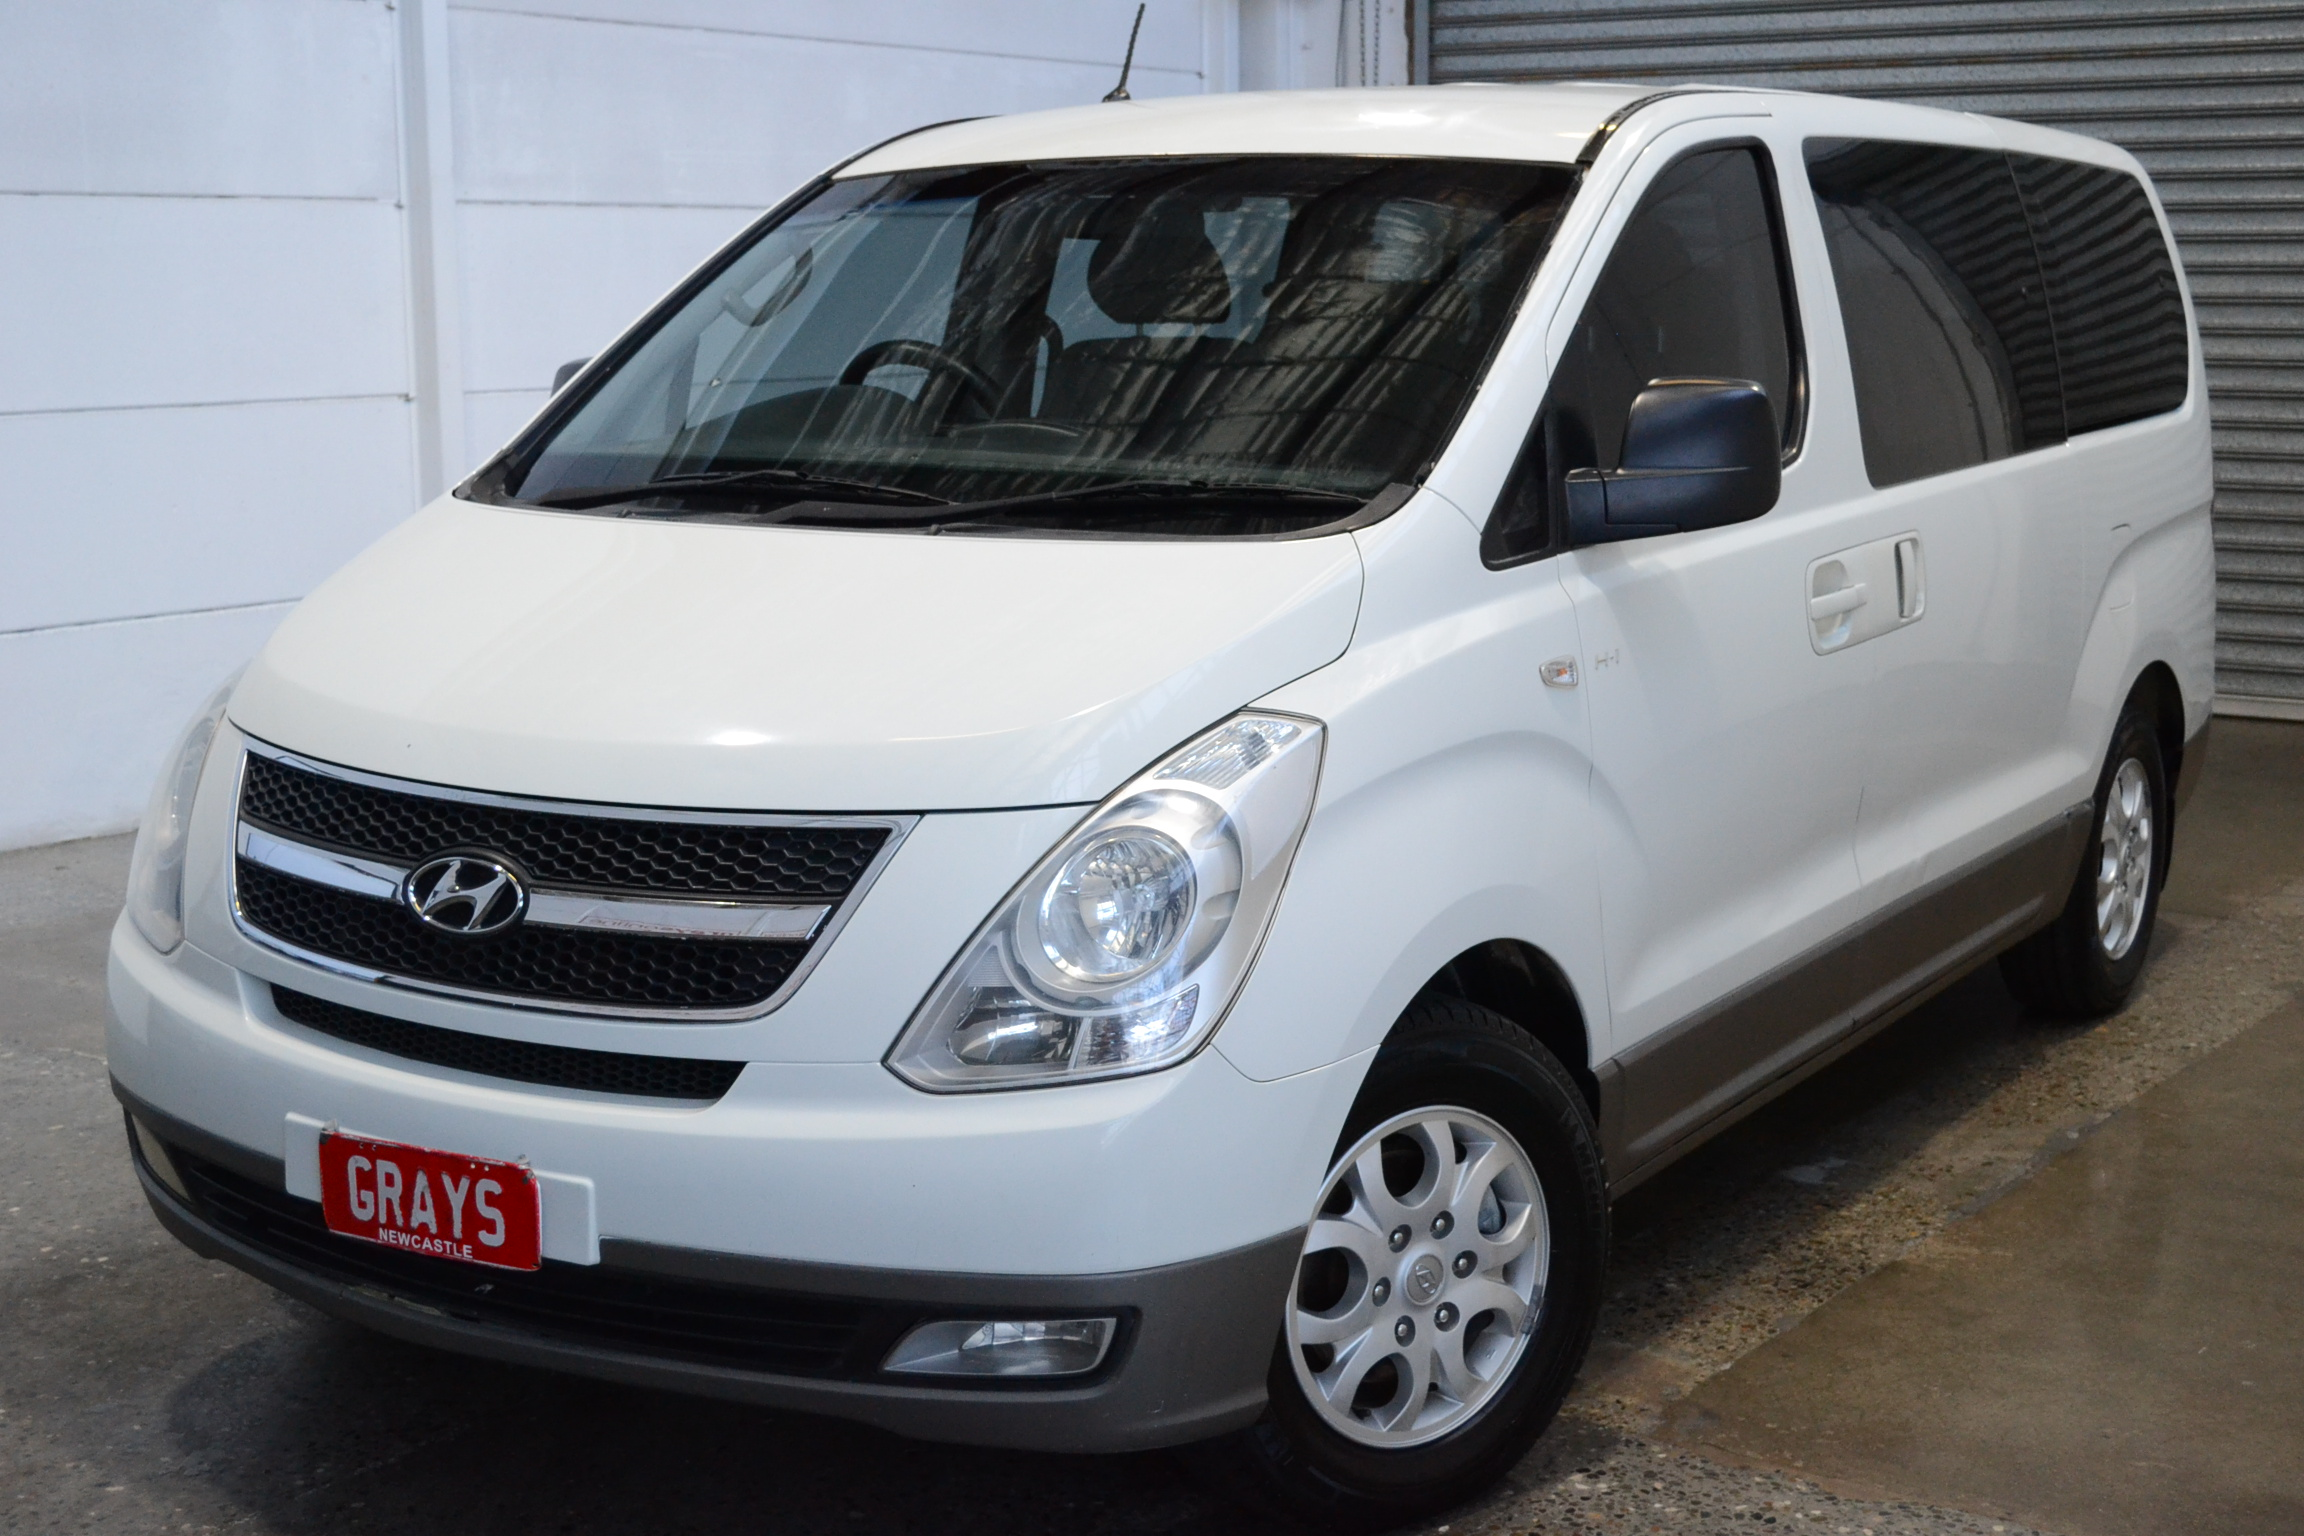 2011 Hyundai iMAX TQ Turbo Diesel Automatic 8 Seats People Mover